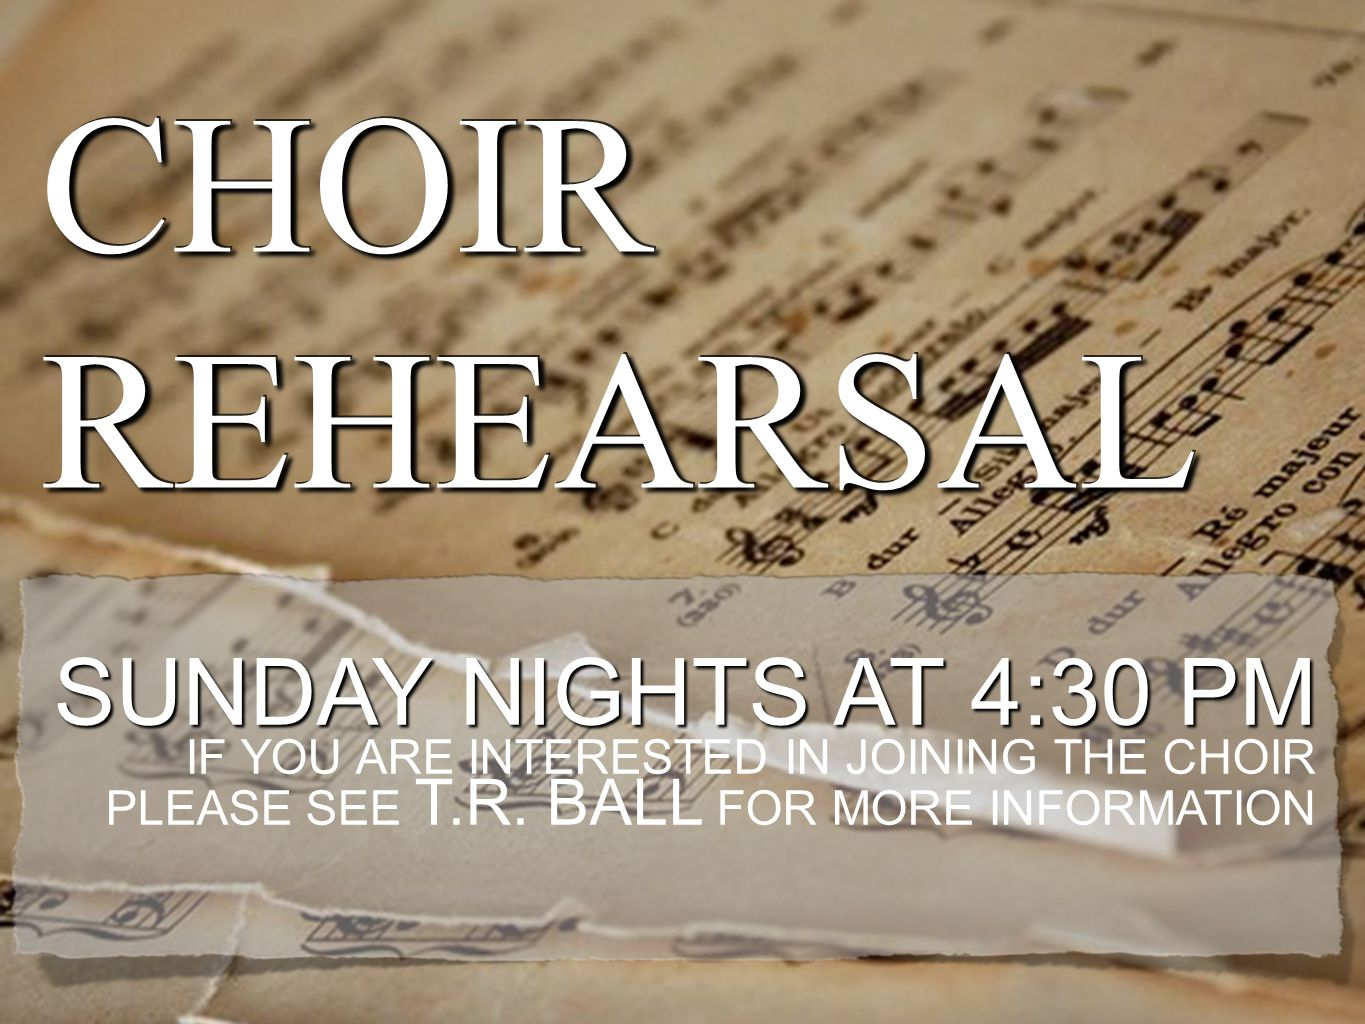 CHOIR REHEARSAL SUNDAY NIGHTS AT 4:30 PM